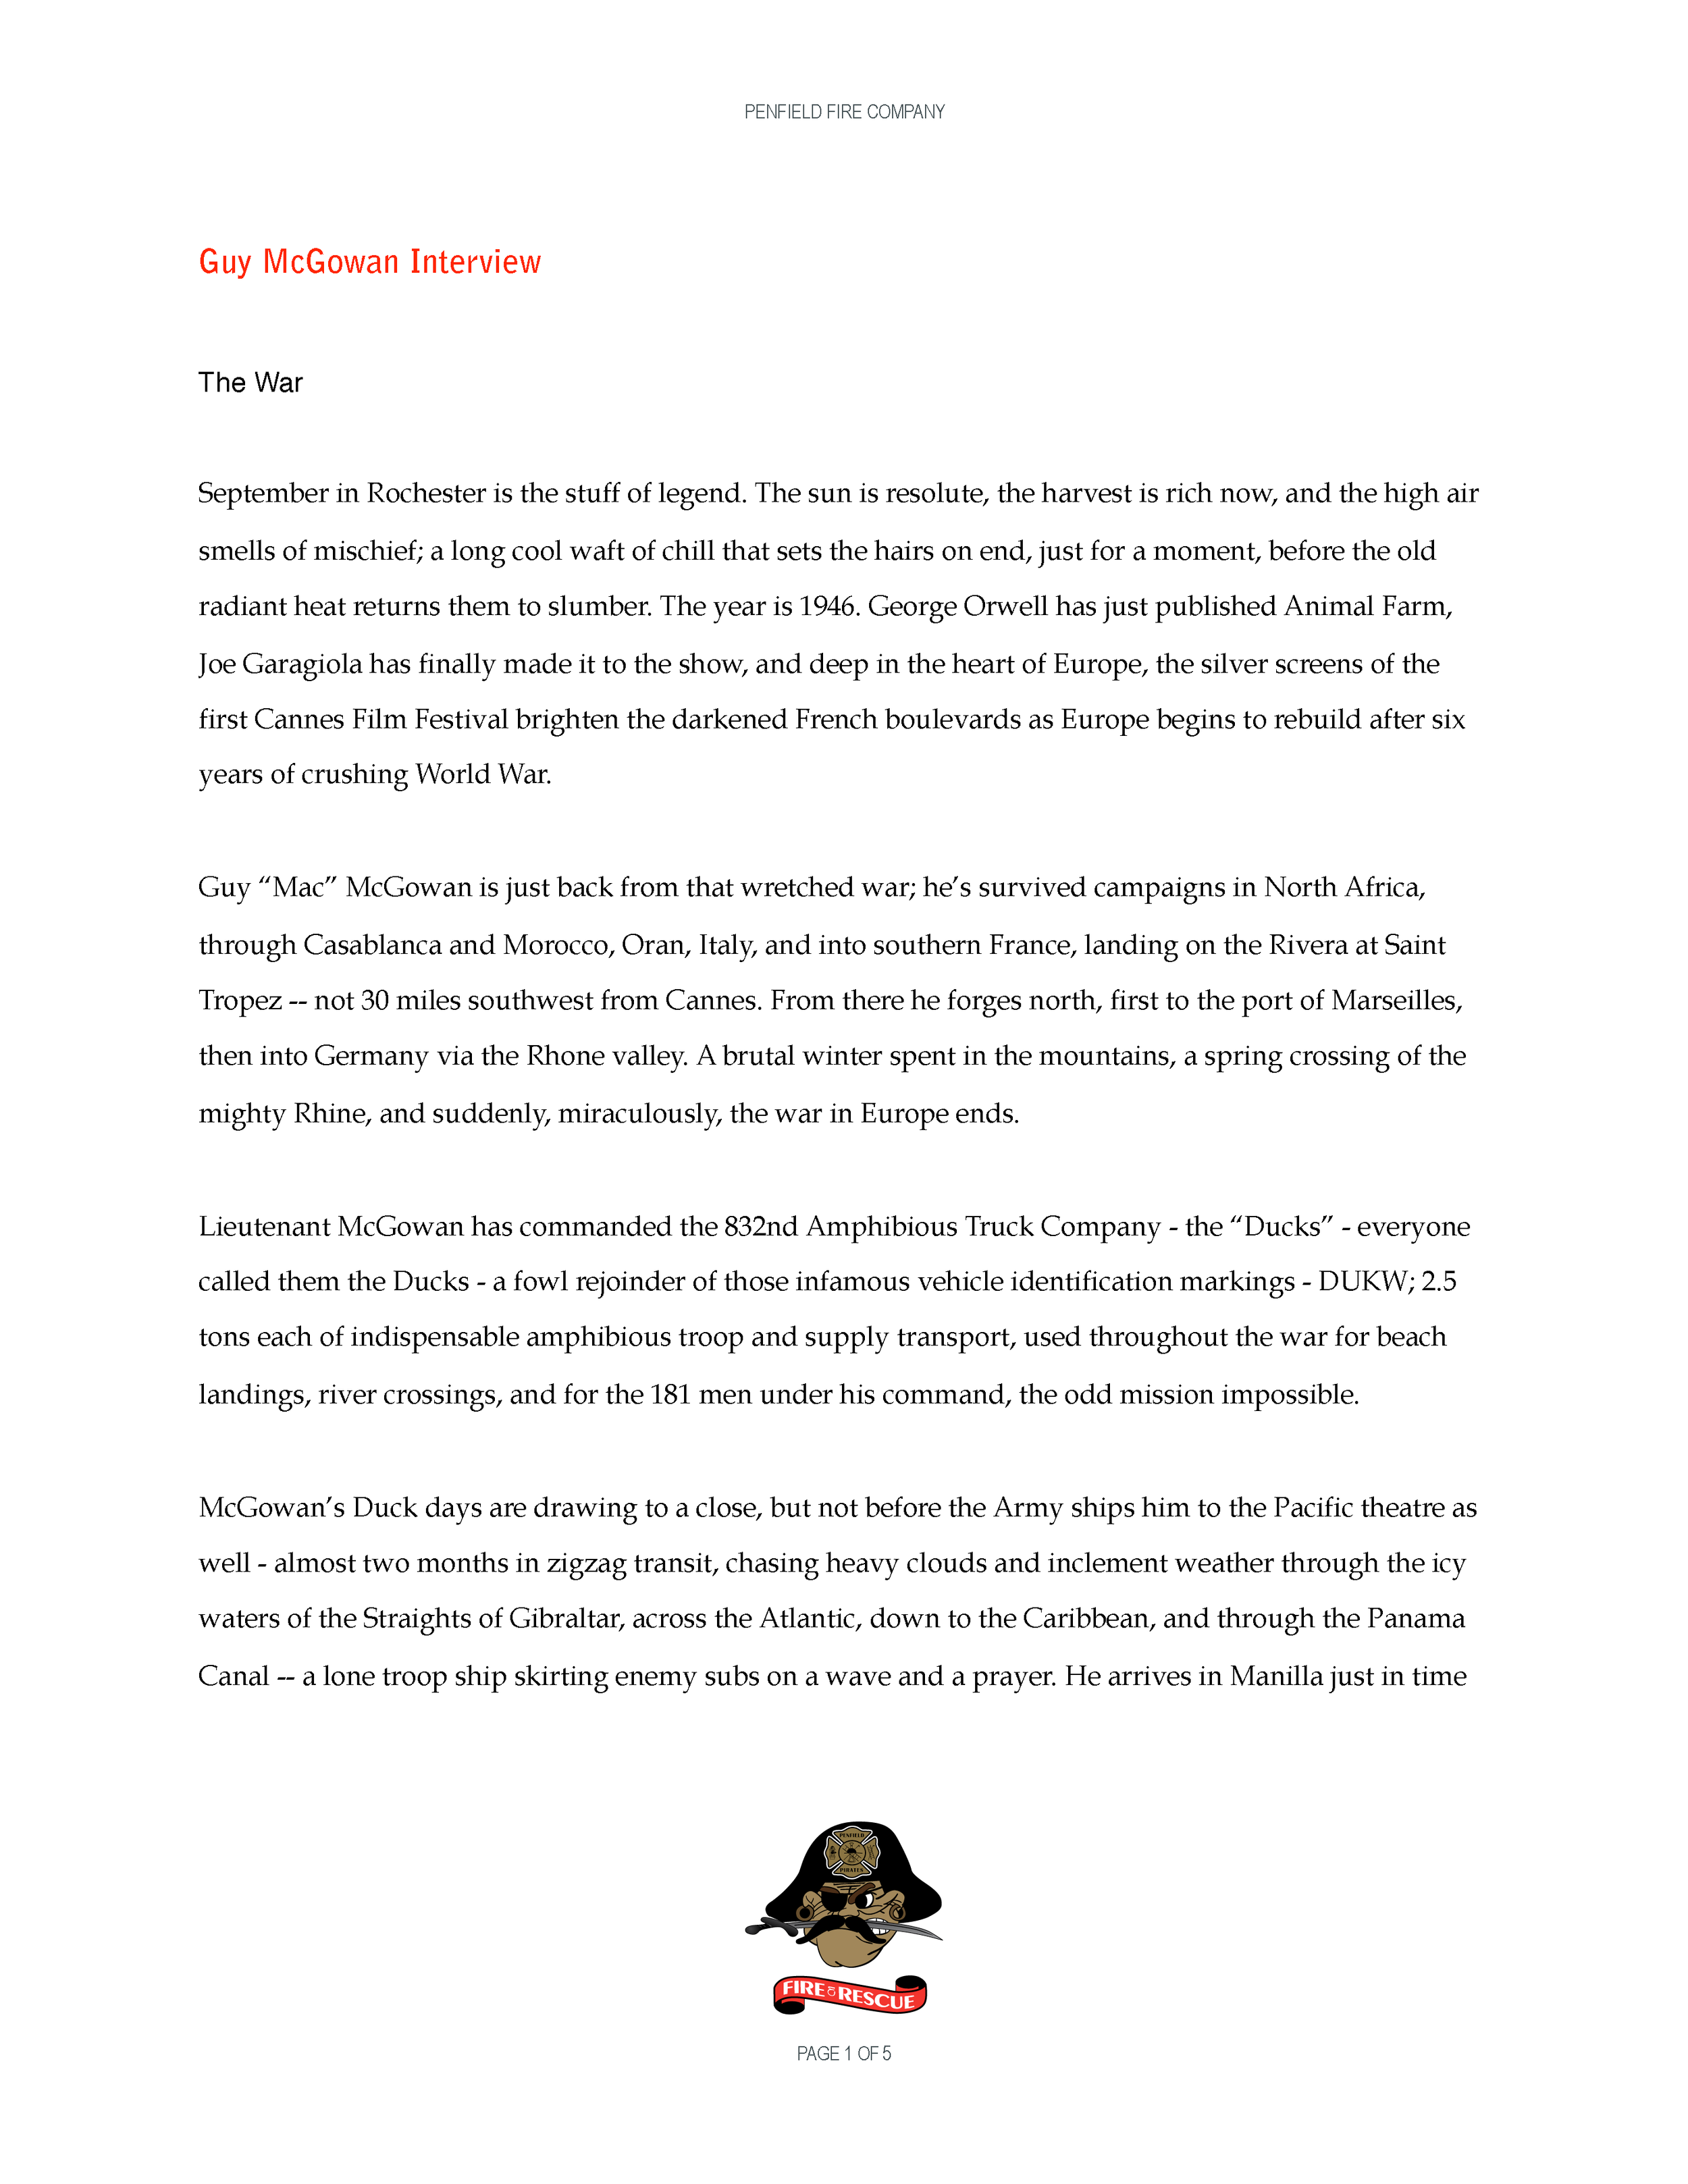 09-08-05 Guy McGowan Interview_Page_1.png